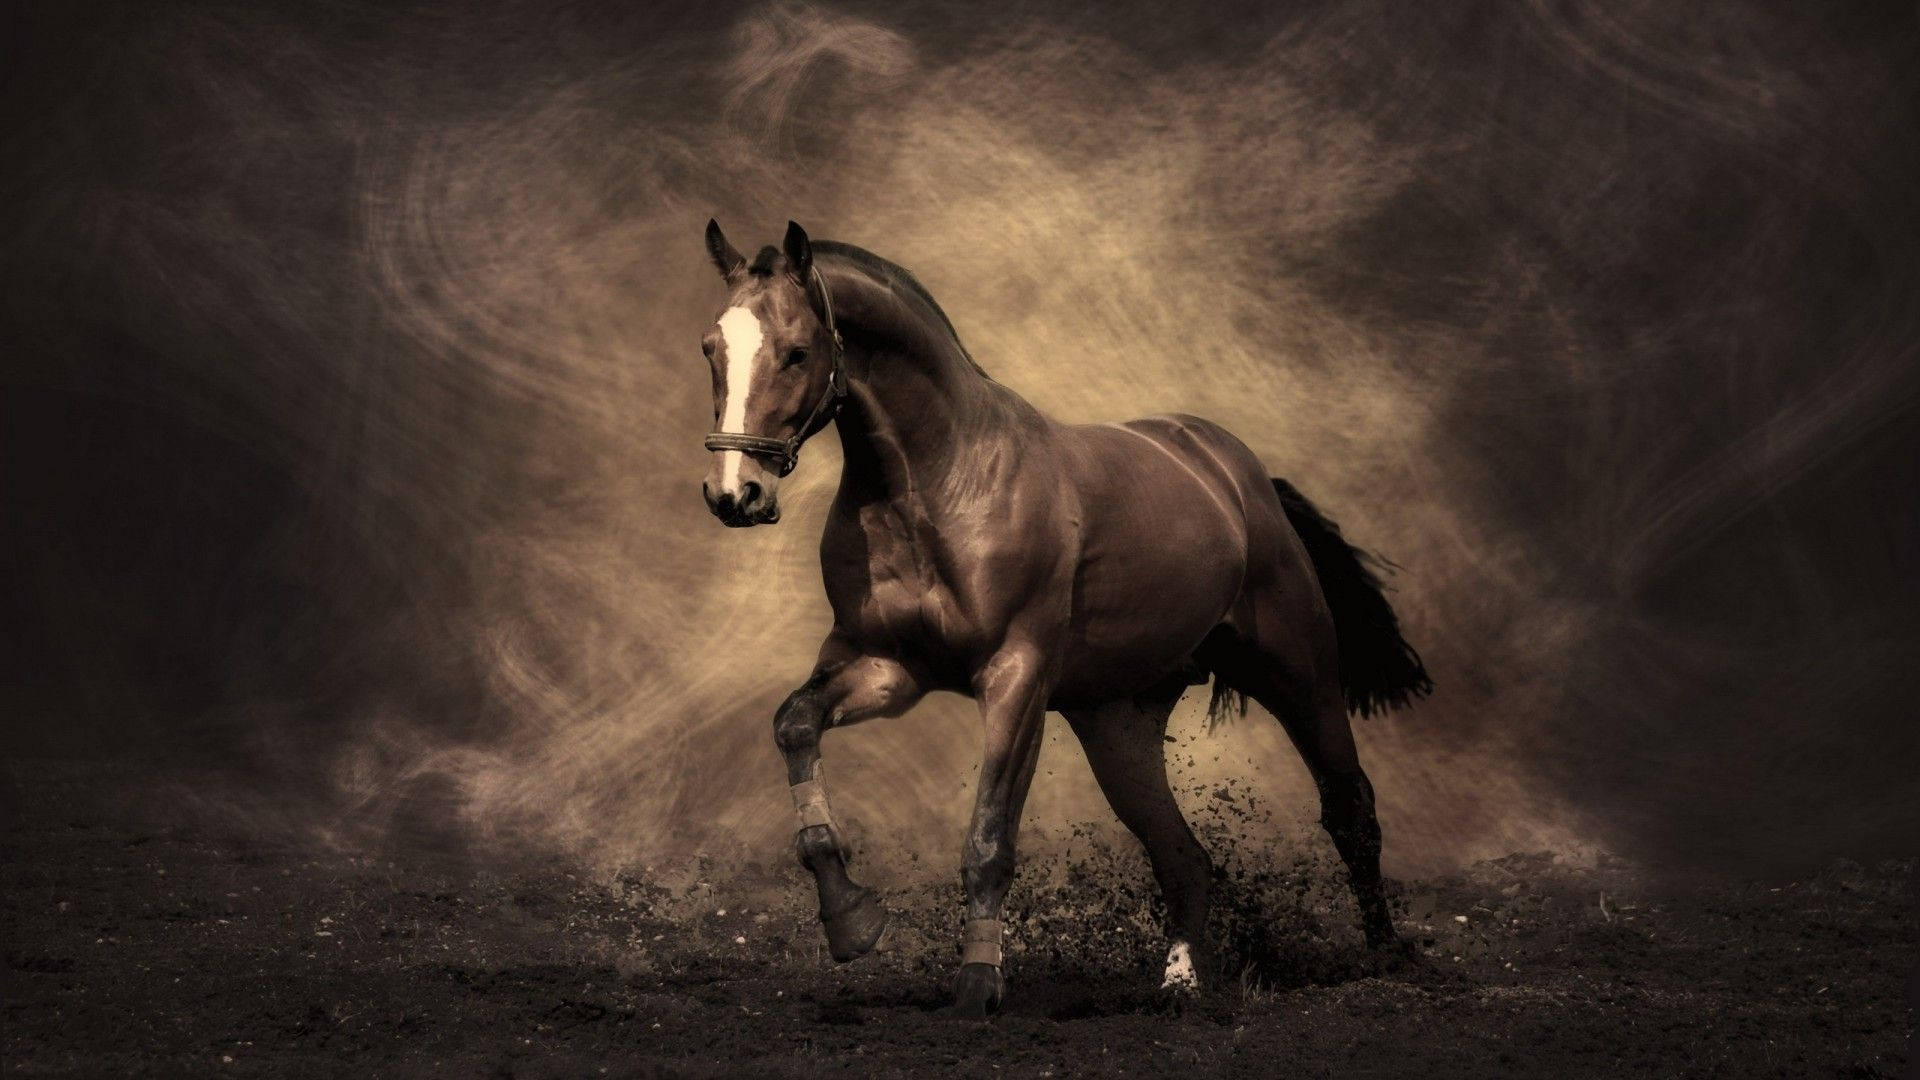 Wonderful Wallpaper Horse High Quality - 0ab422f1aef9d8551940c6537136cd7d  Trends_289514.jpg